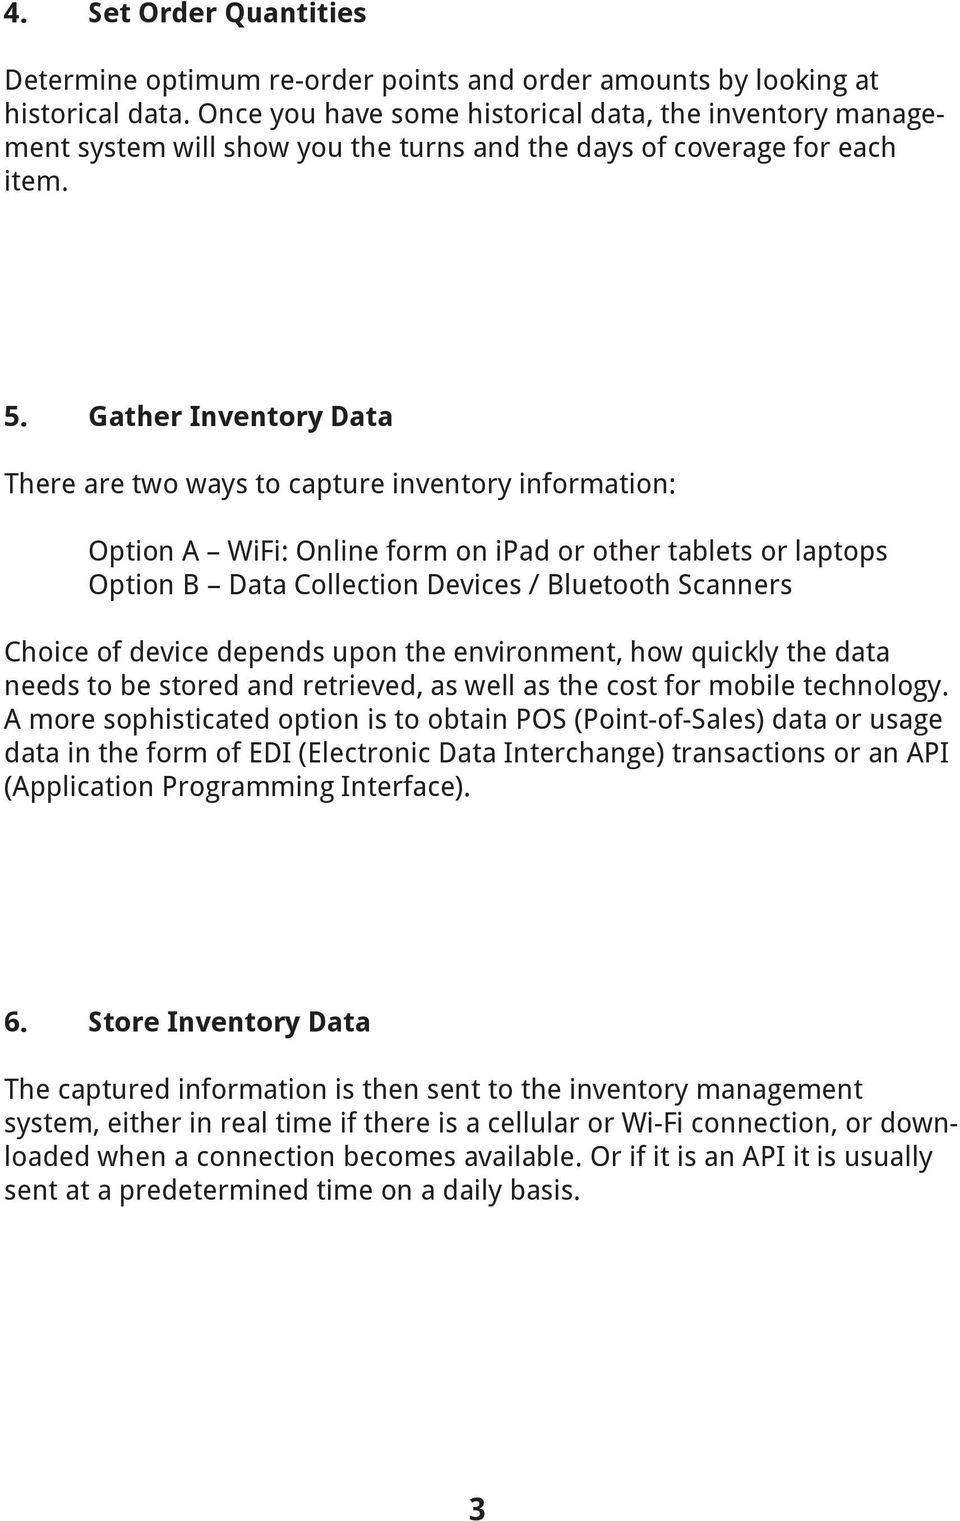 Gather Inventory Data There are two ways to capture inventory information: Option A WiFi: Online form on ipad or other tablets or laptops Option B Data Collection Devices / Bluetooth Scanners Choice